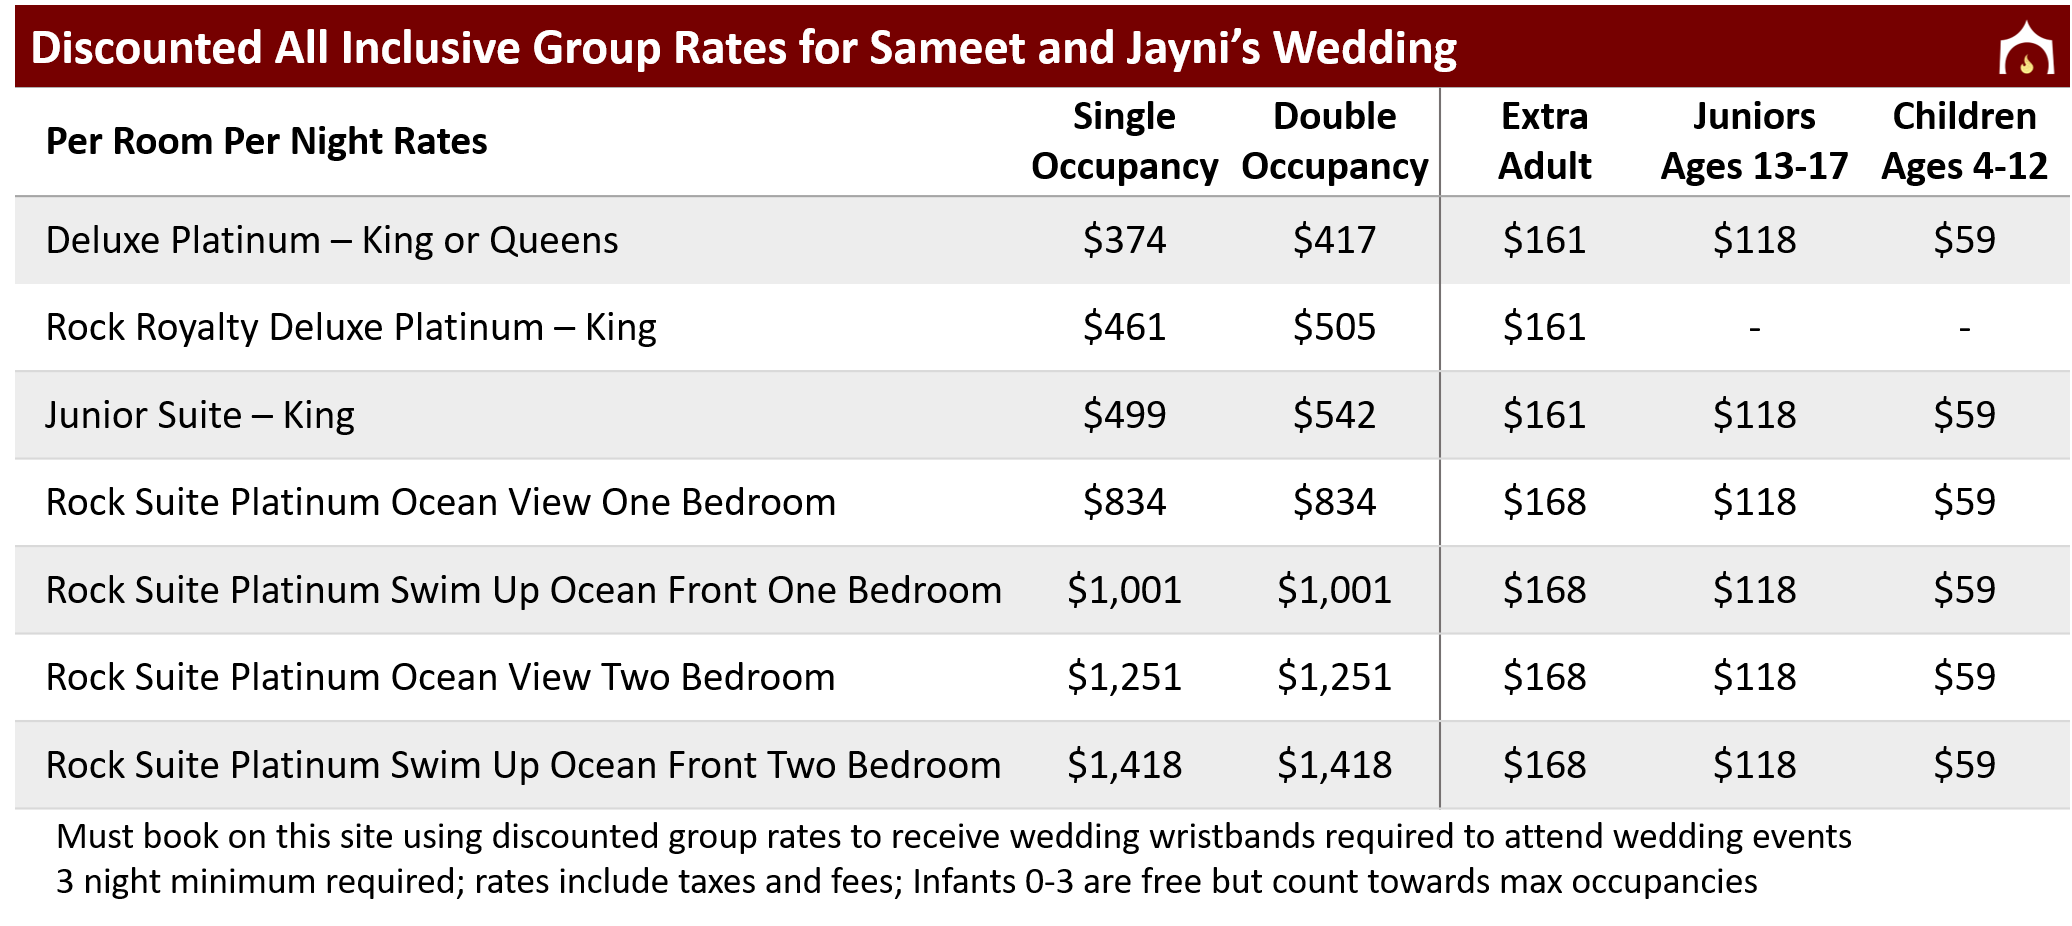 Discounted Group Rates for Jyani and Sameet.png